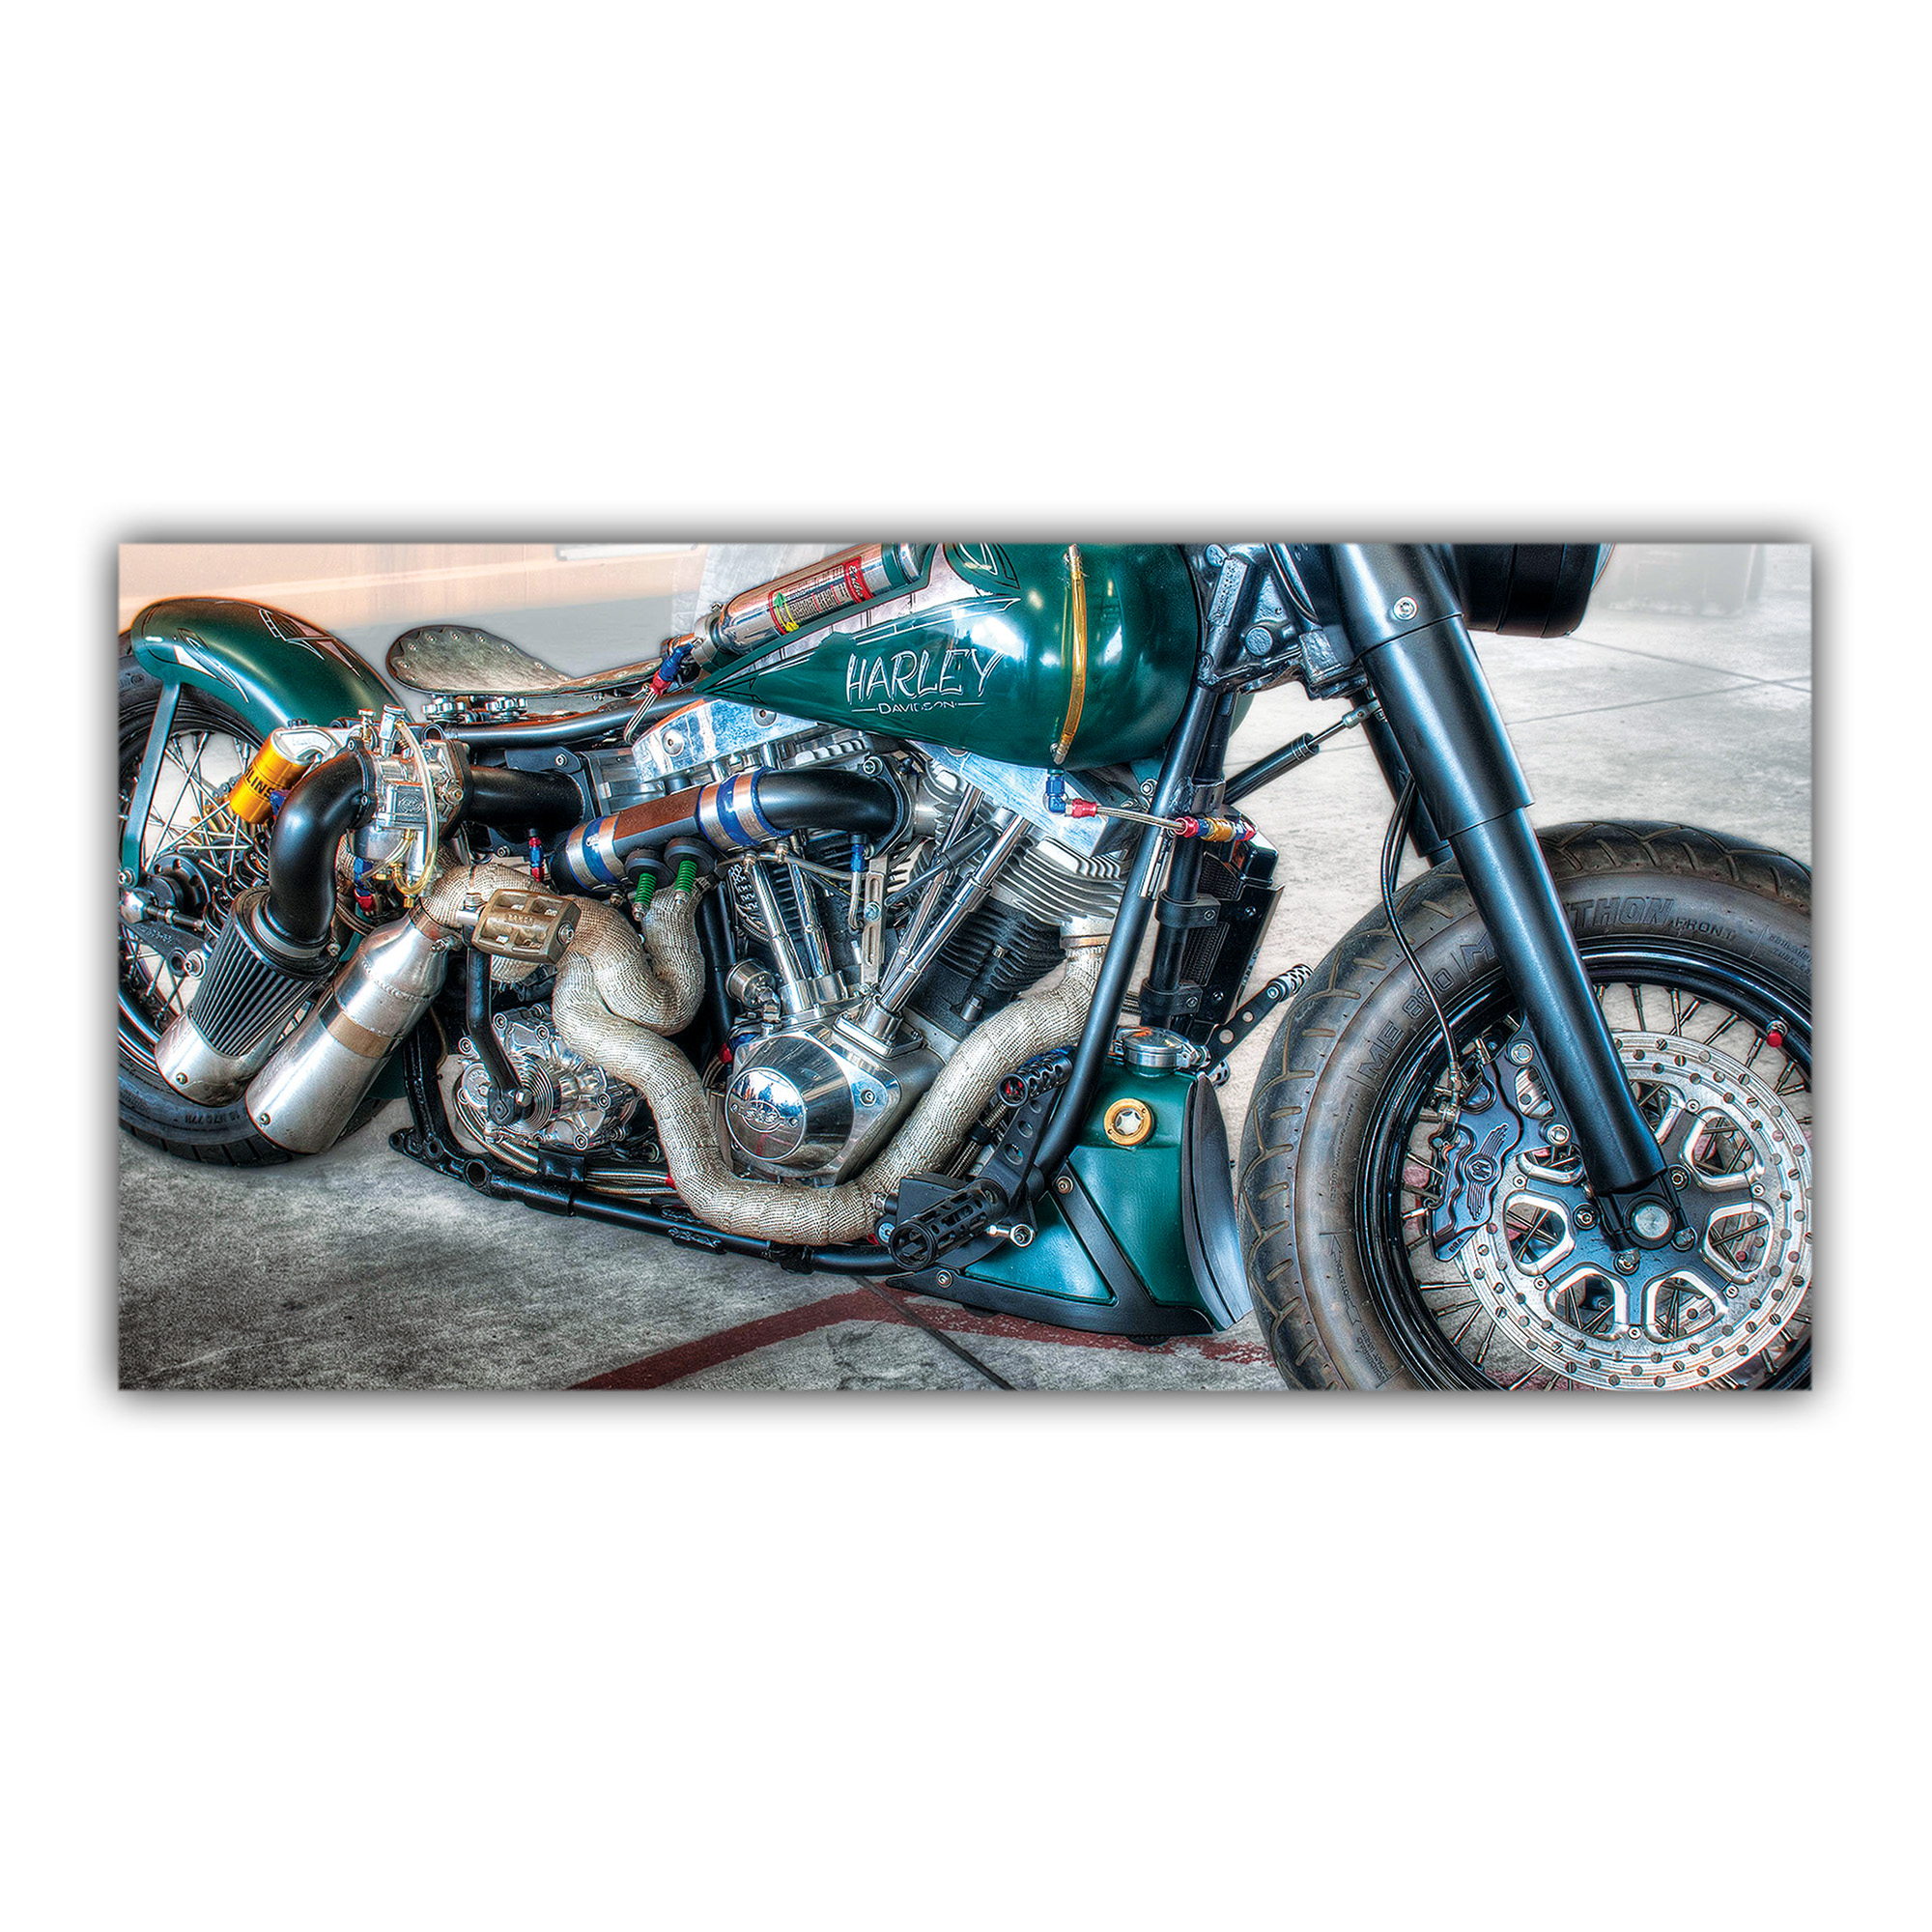 harley davidson r tro custom plaque imprim e pour votre d coration int rieure. Black Bedroom Furniture Sets. Home Design Ideas